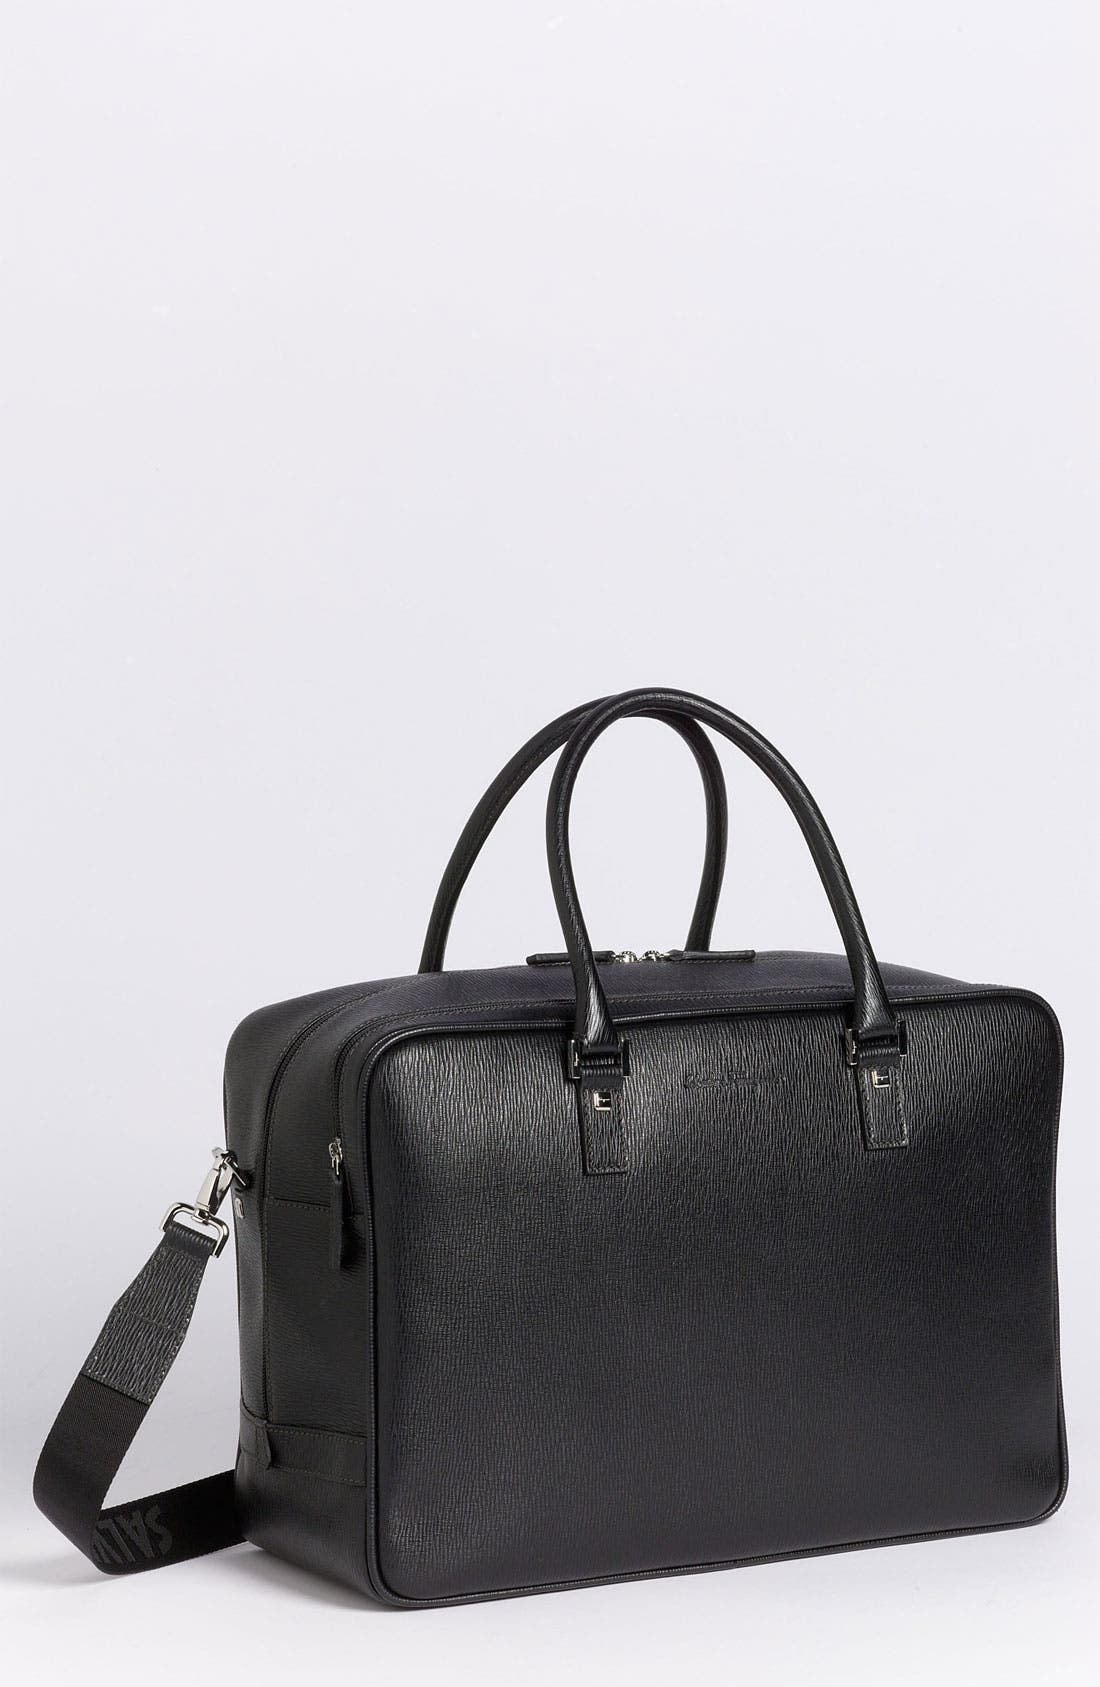 Alternate Image 1 Selected - Salvatore Ferragamo 'Revival' Bag